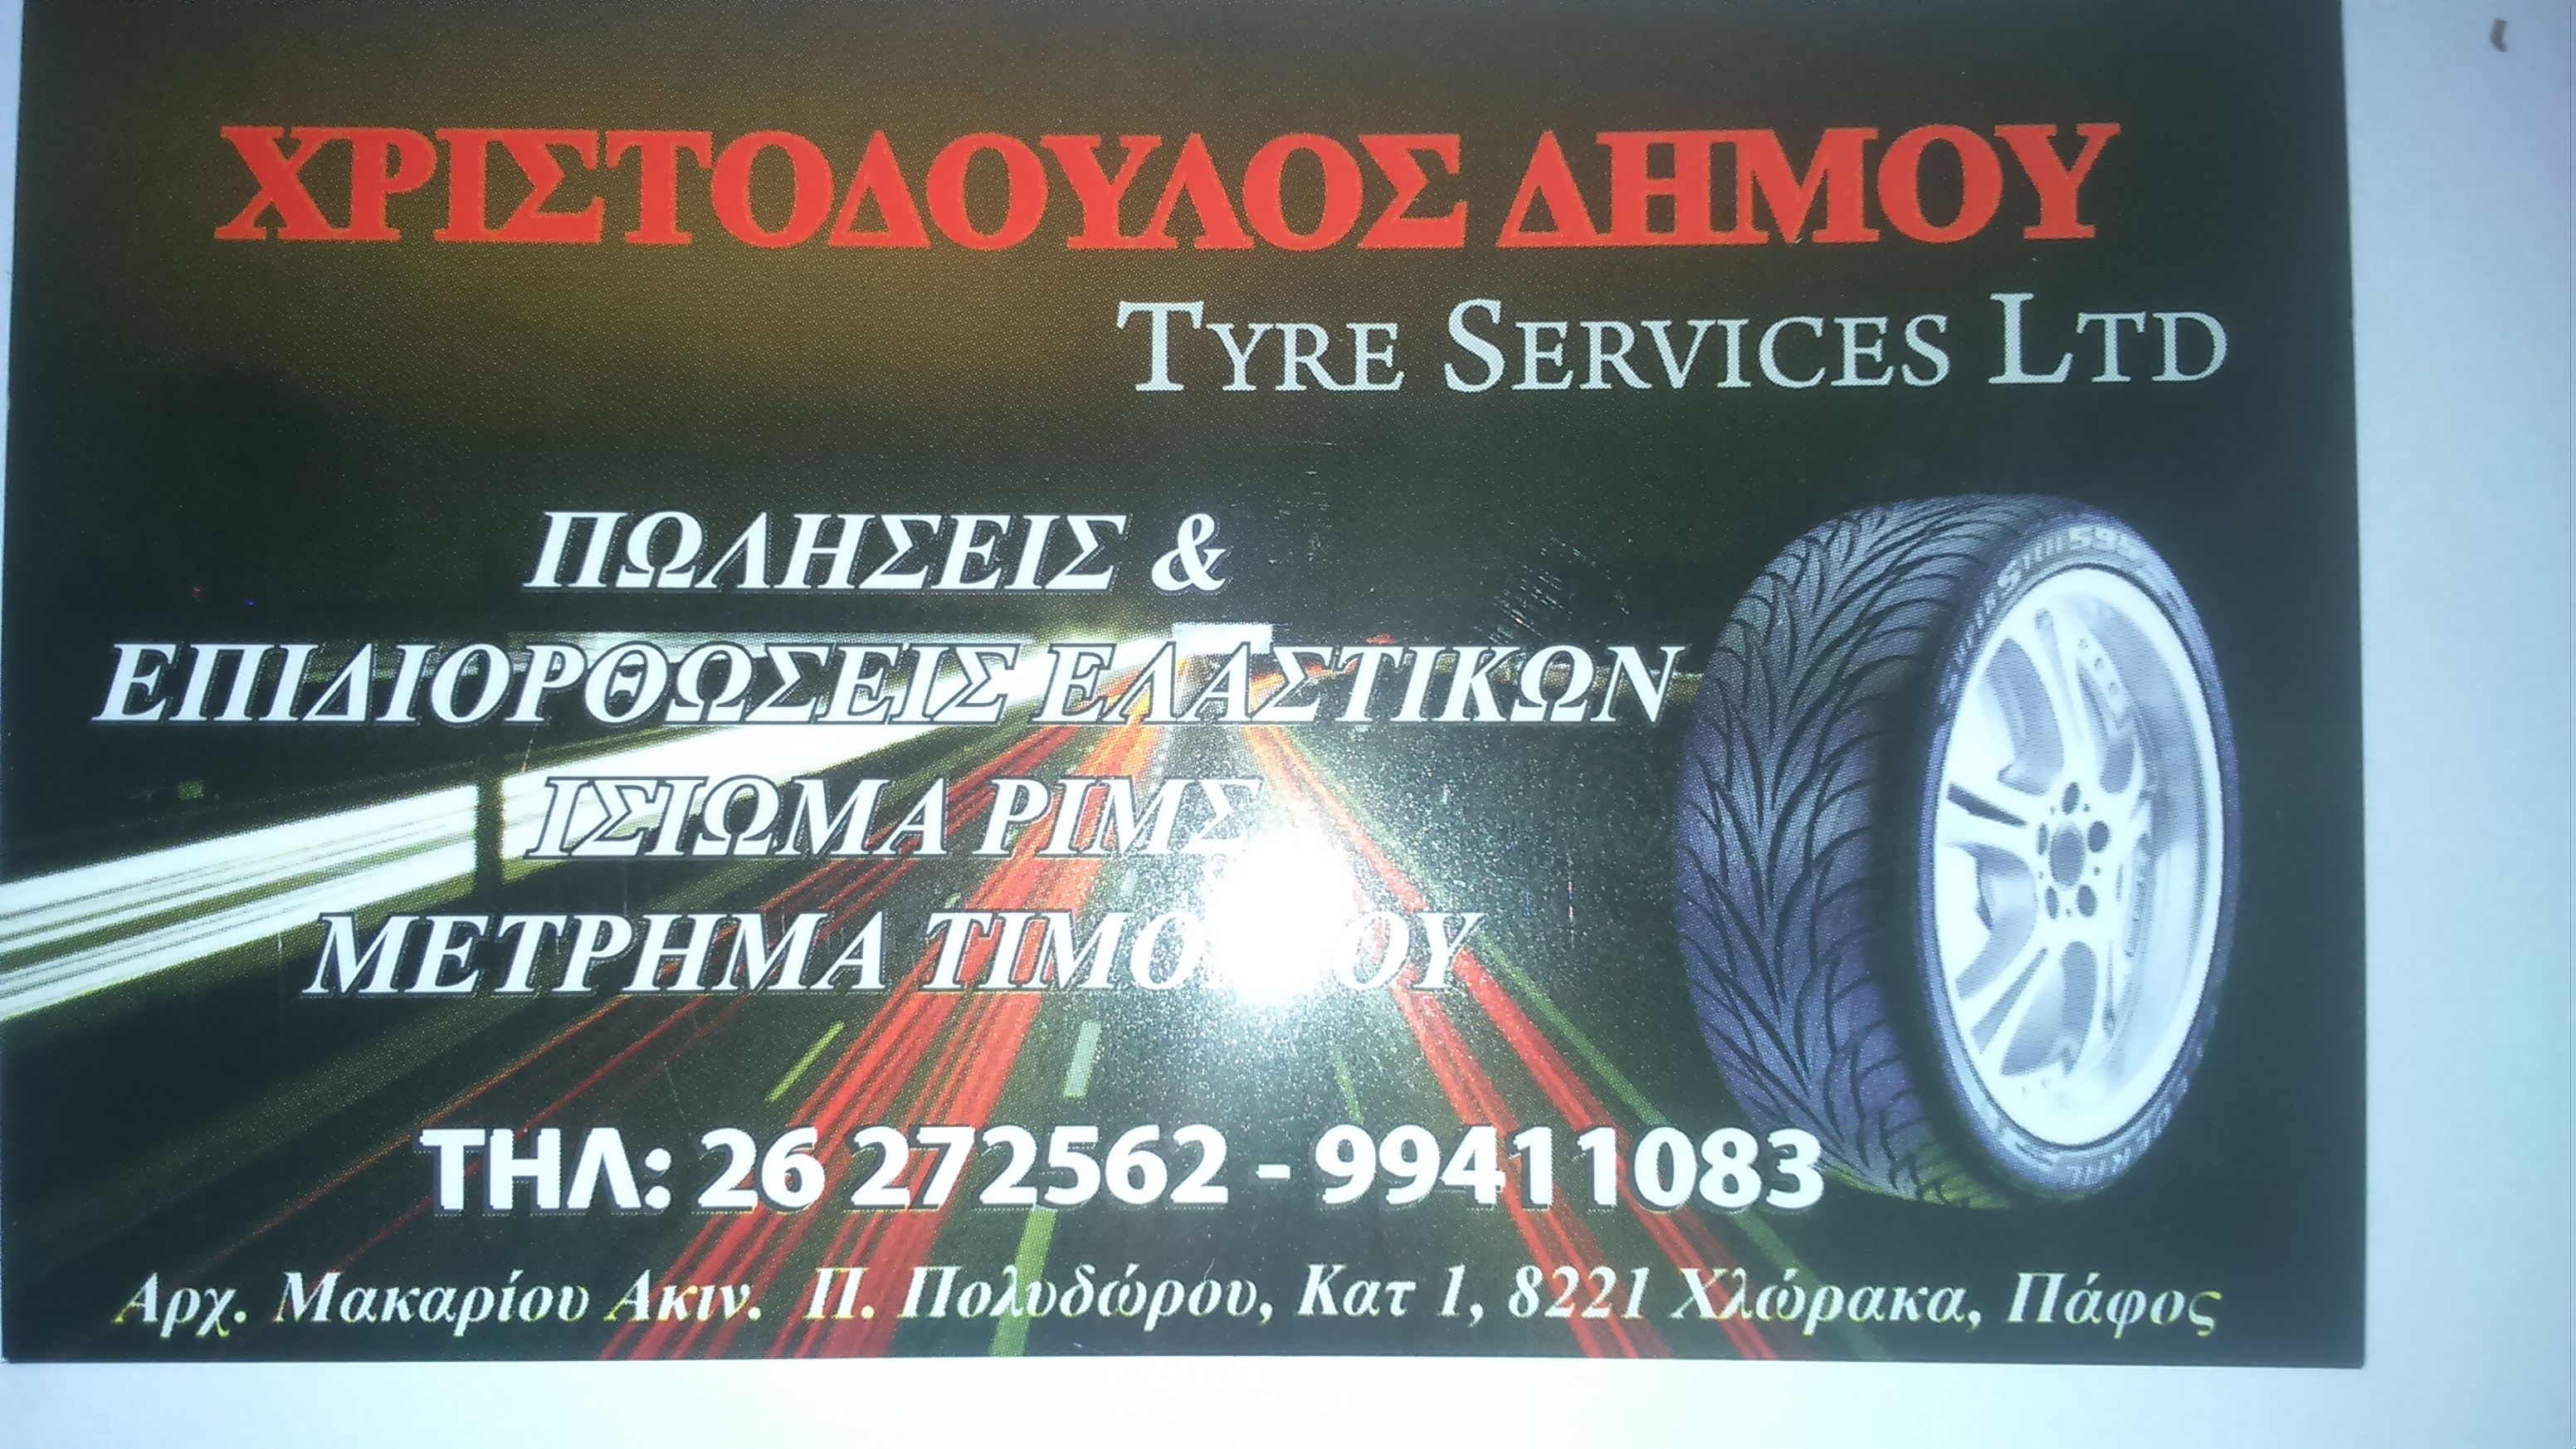 Chrystodoulos Demou Tyre Service